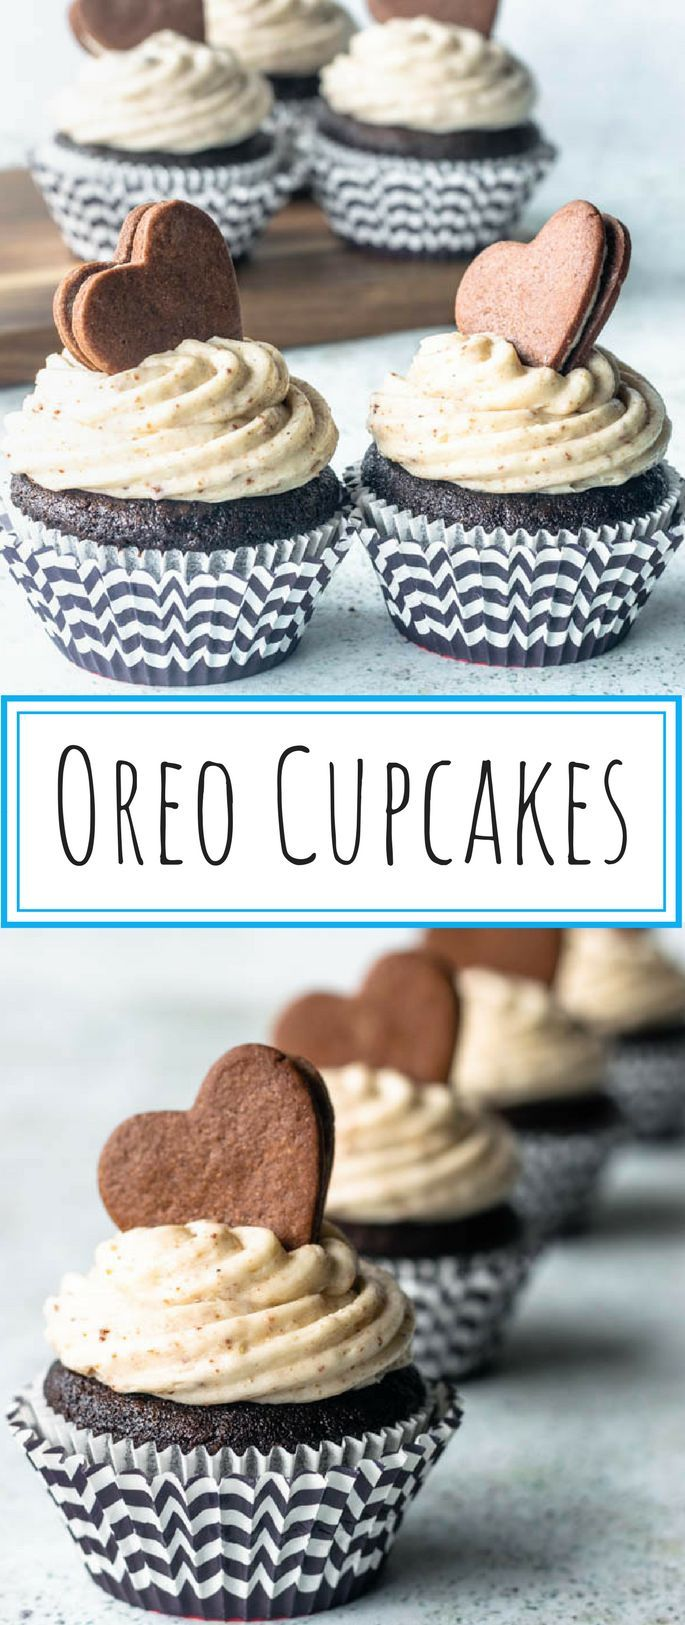 Oreo Cupcakes - Cookies and Cream Cupcakes Oreo Cupcakes - Pies and Tacos